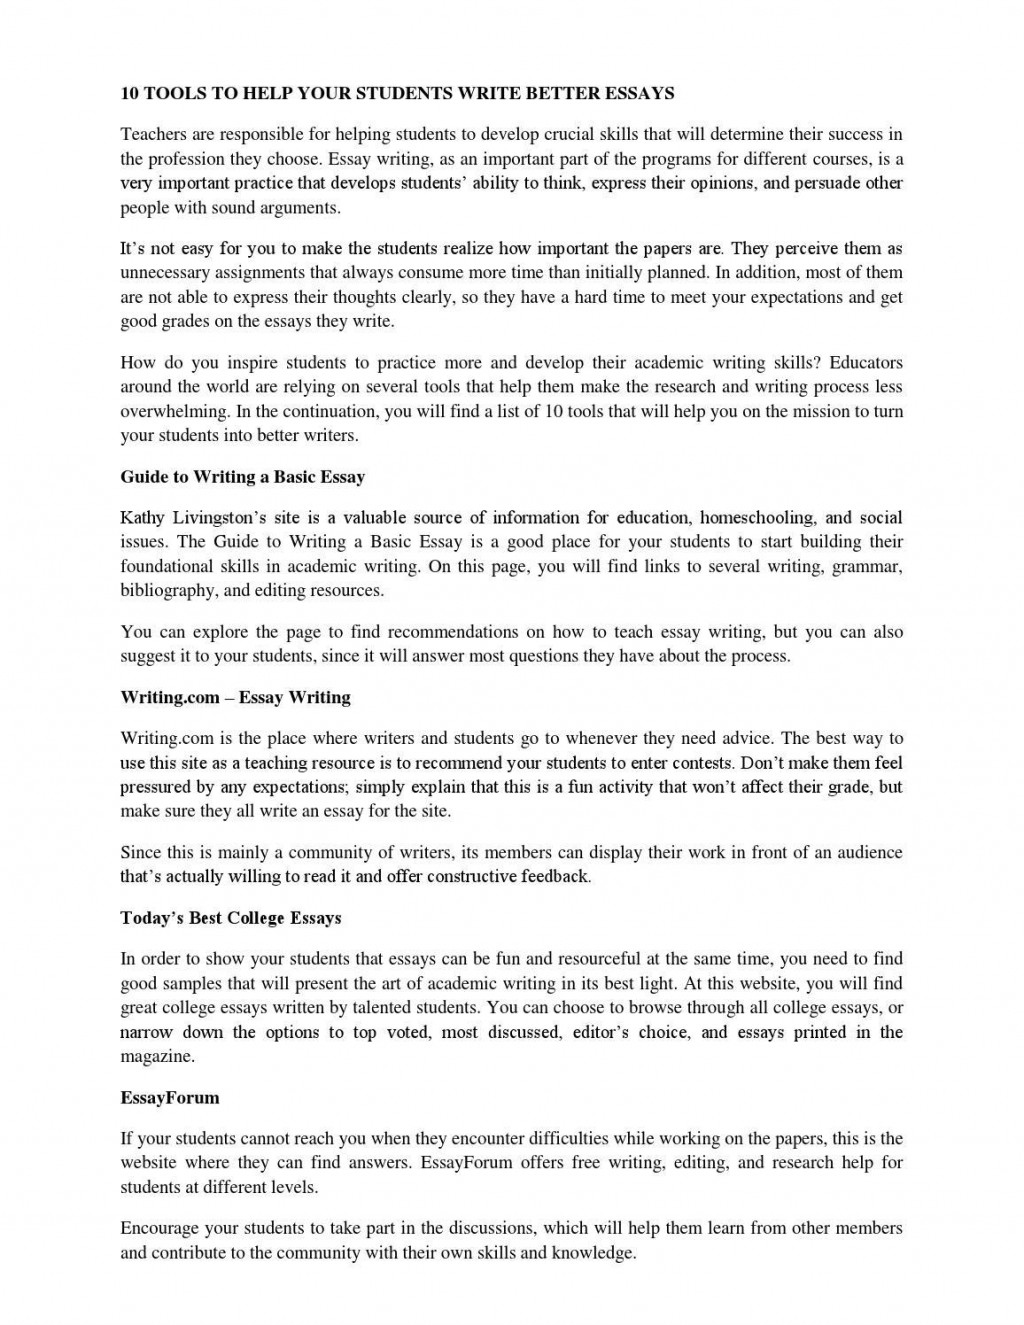 002 Research Paper Websites Essay Writing Reviews For Students Editing Free Page Example Formidable Best Good Sources Papers Download Large